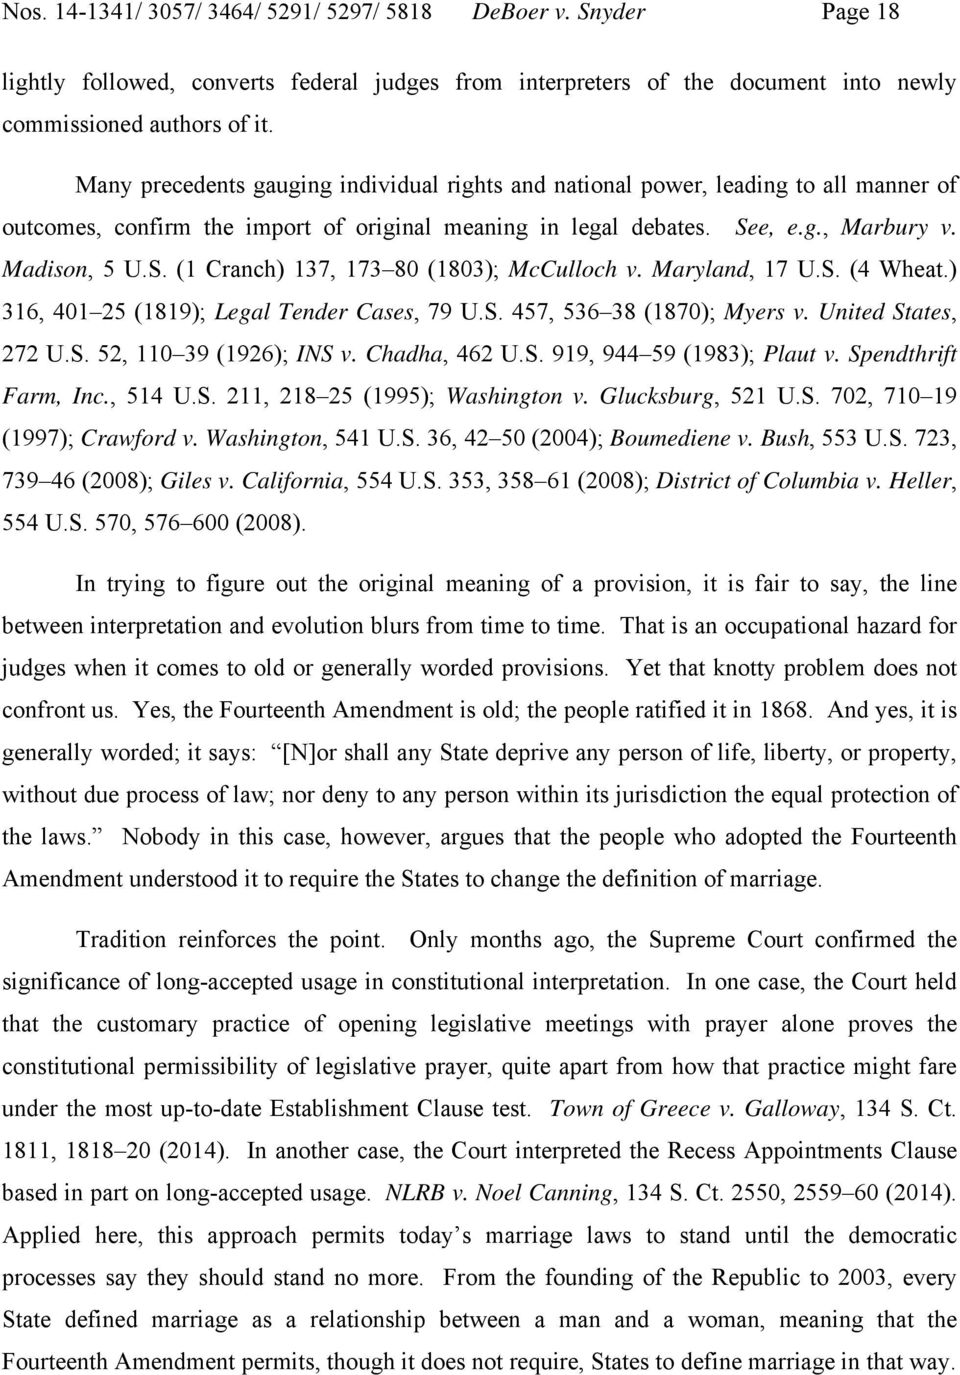 Maryland, 17 U.S. (4 Wheat.) 316, 401 25 (1819); Legal Tender Cases, 79 U.S. 457, 536 38 (1870); Myers v. United States, 272 U.S. 52, 110 39 (1926); INS v. Chadha, 462 U.S. 919, 944 59 (1983); Plaut v.